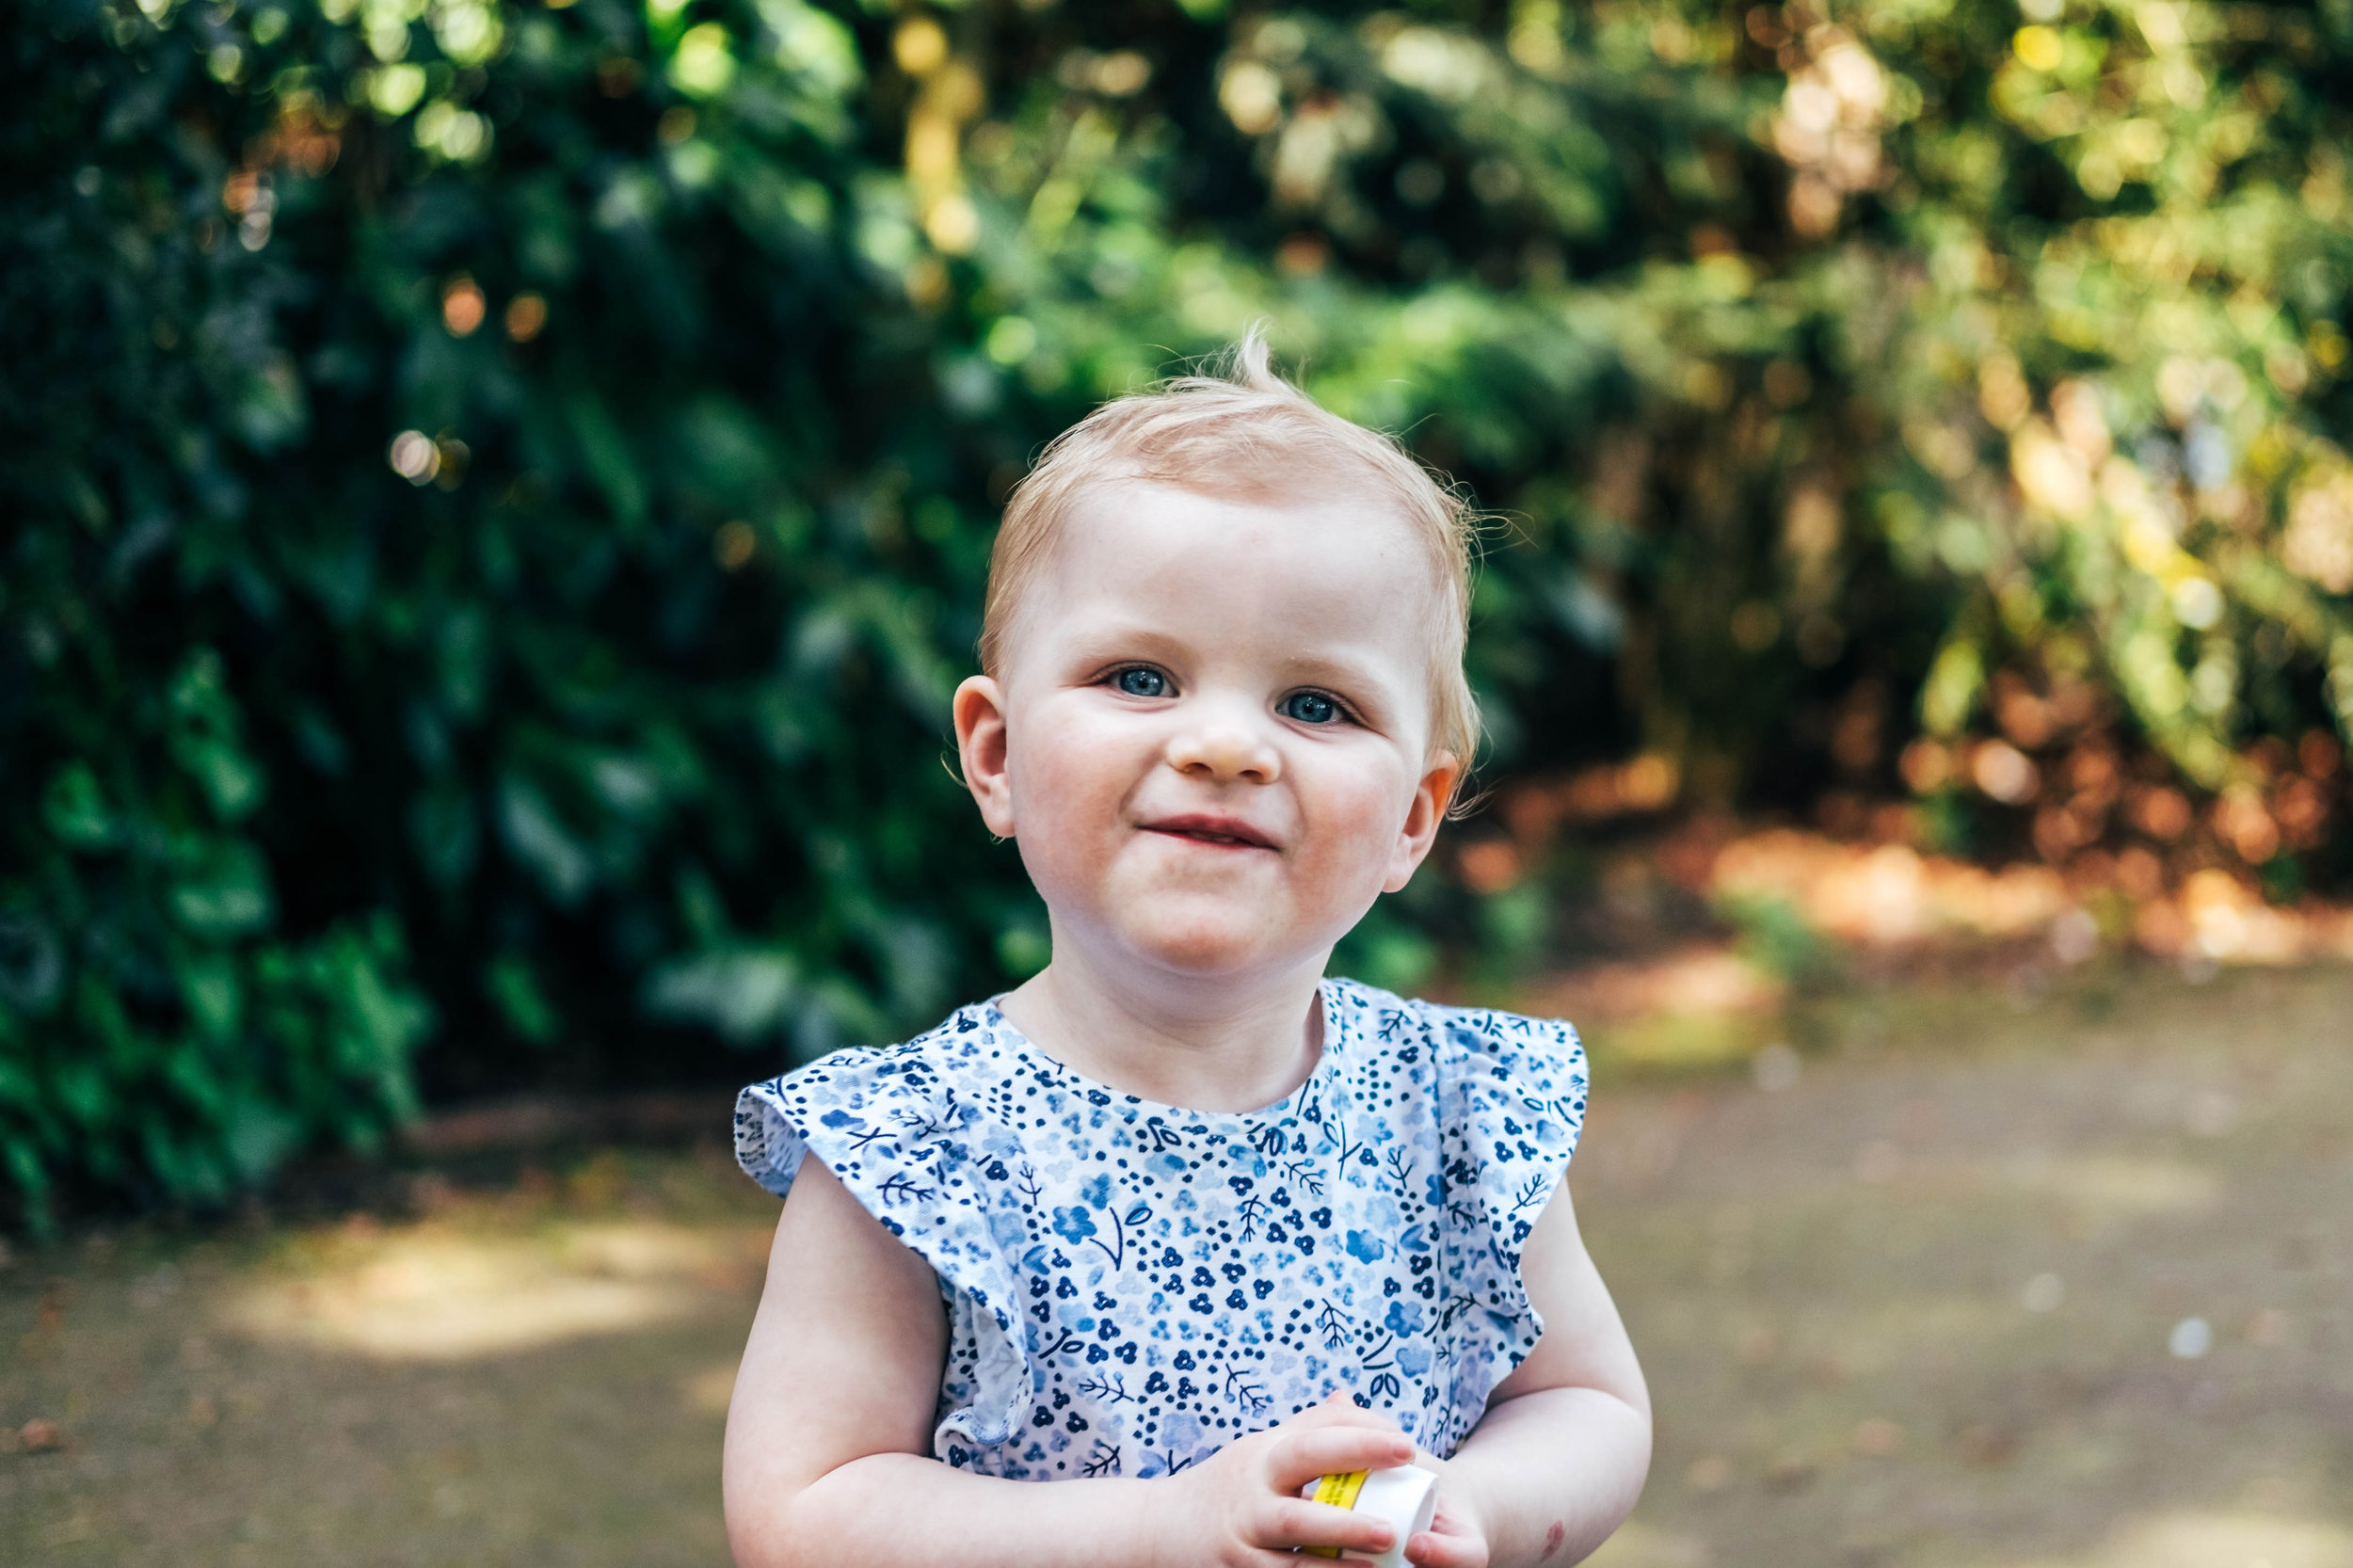 Baby in park in Spring Essex & London Documentary Family Photographer Lifestyle